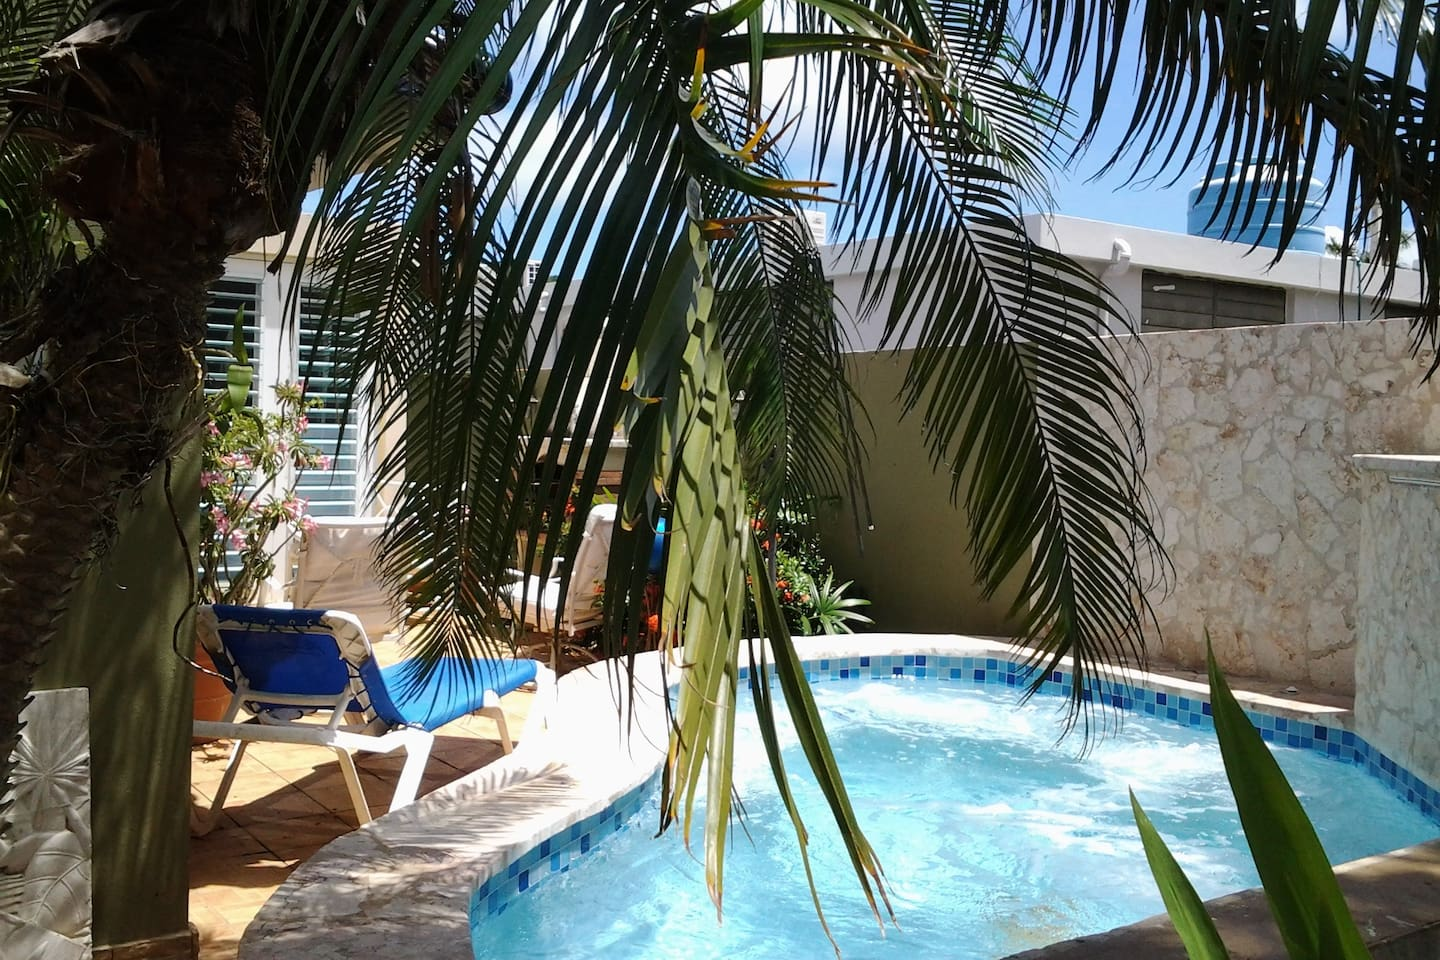 Small jacuzzi pool provides a hydrotherapy experience in a beautiful garden setting!